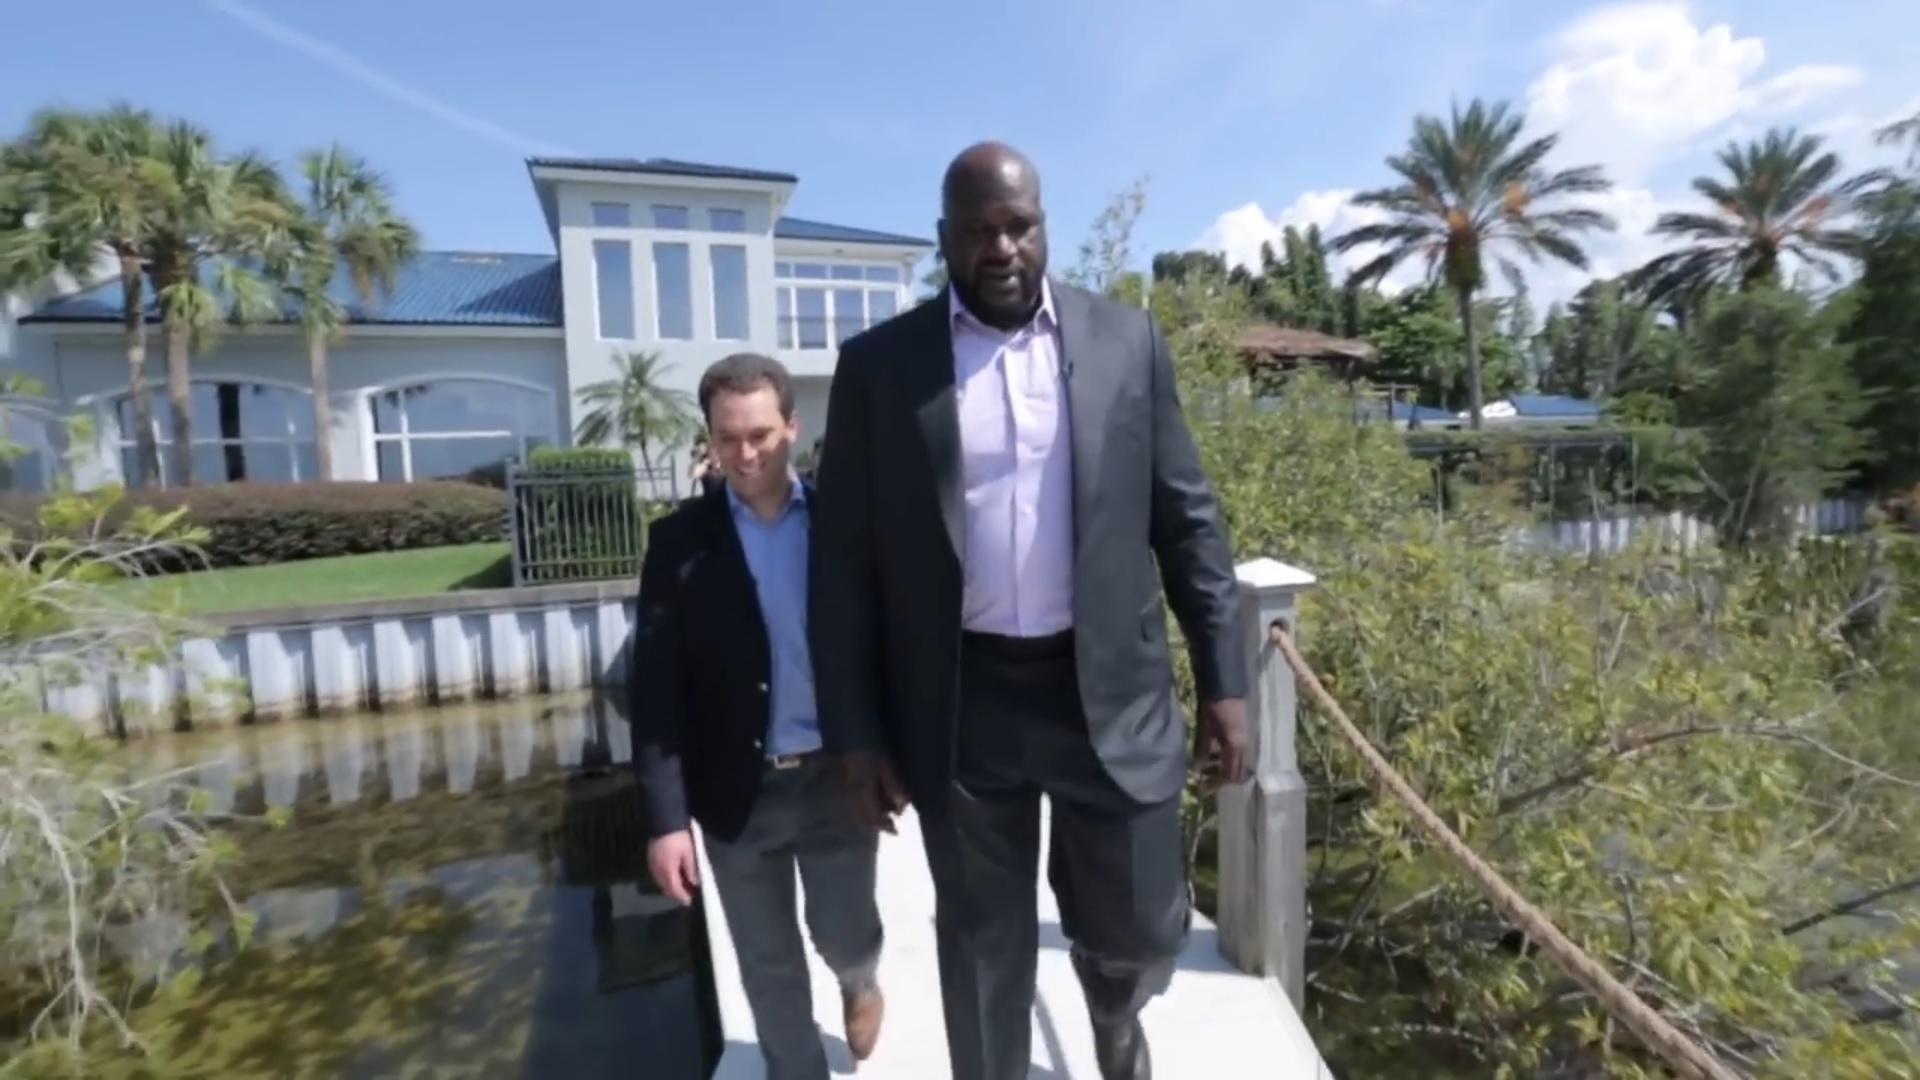 Check out shaq 39 s 70 000 square foot mansion for Shaquille o neal s home